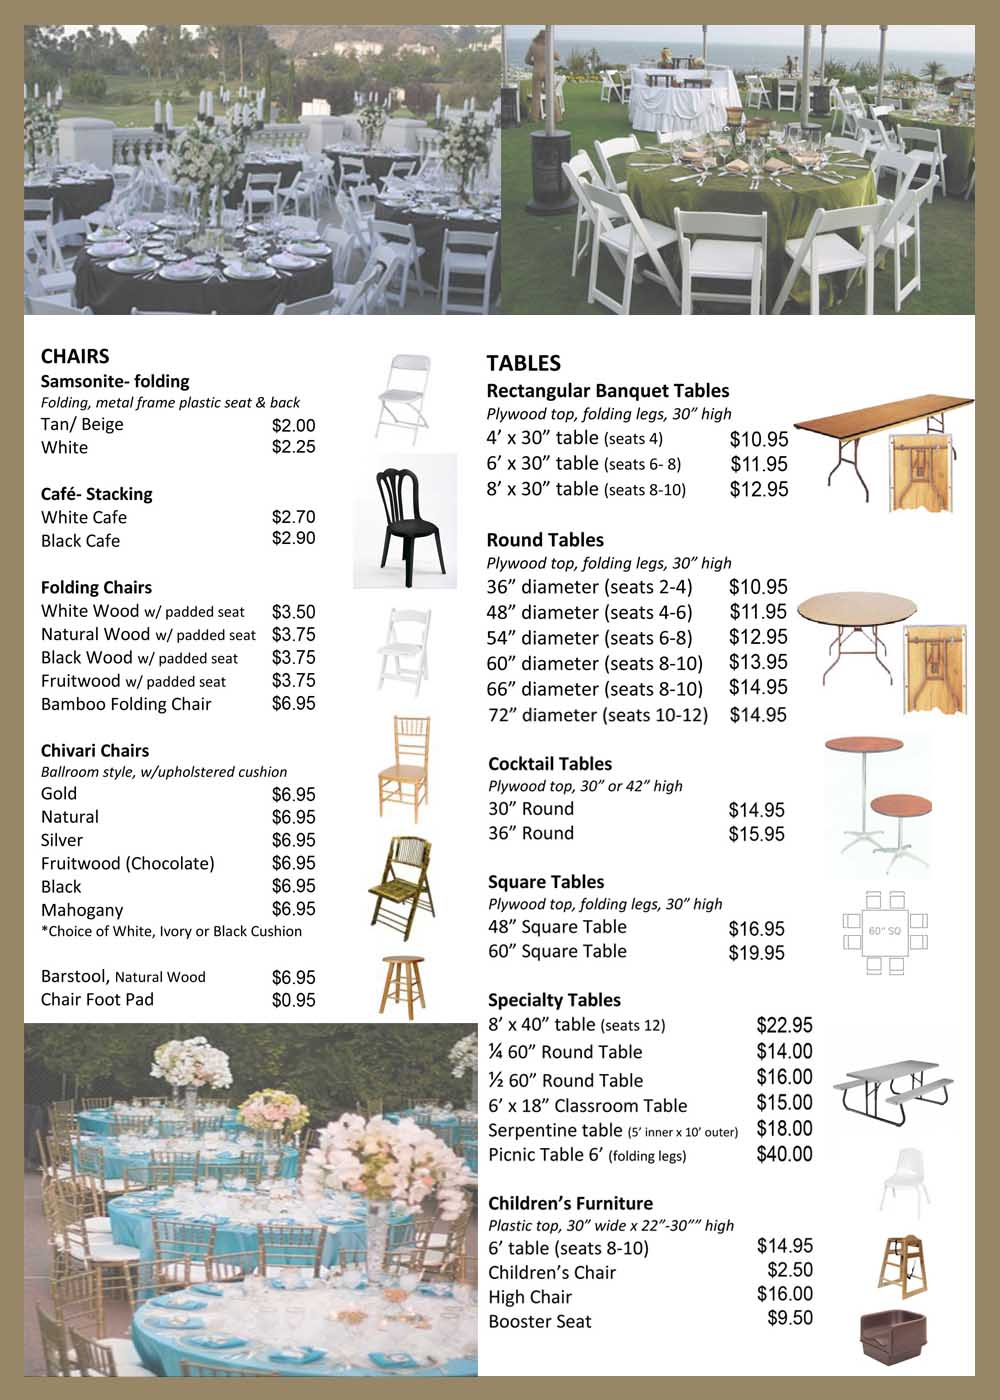 Orange County Catering Equipment,Chairs,Tables,Linens